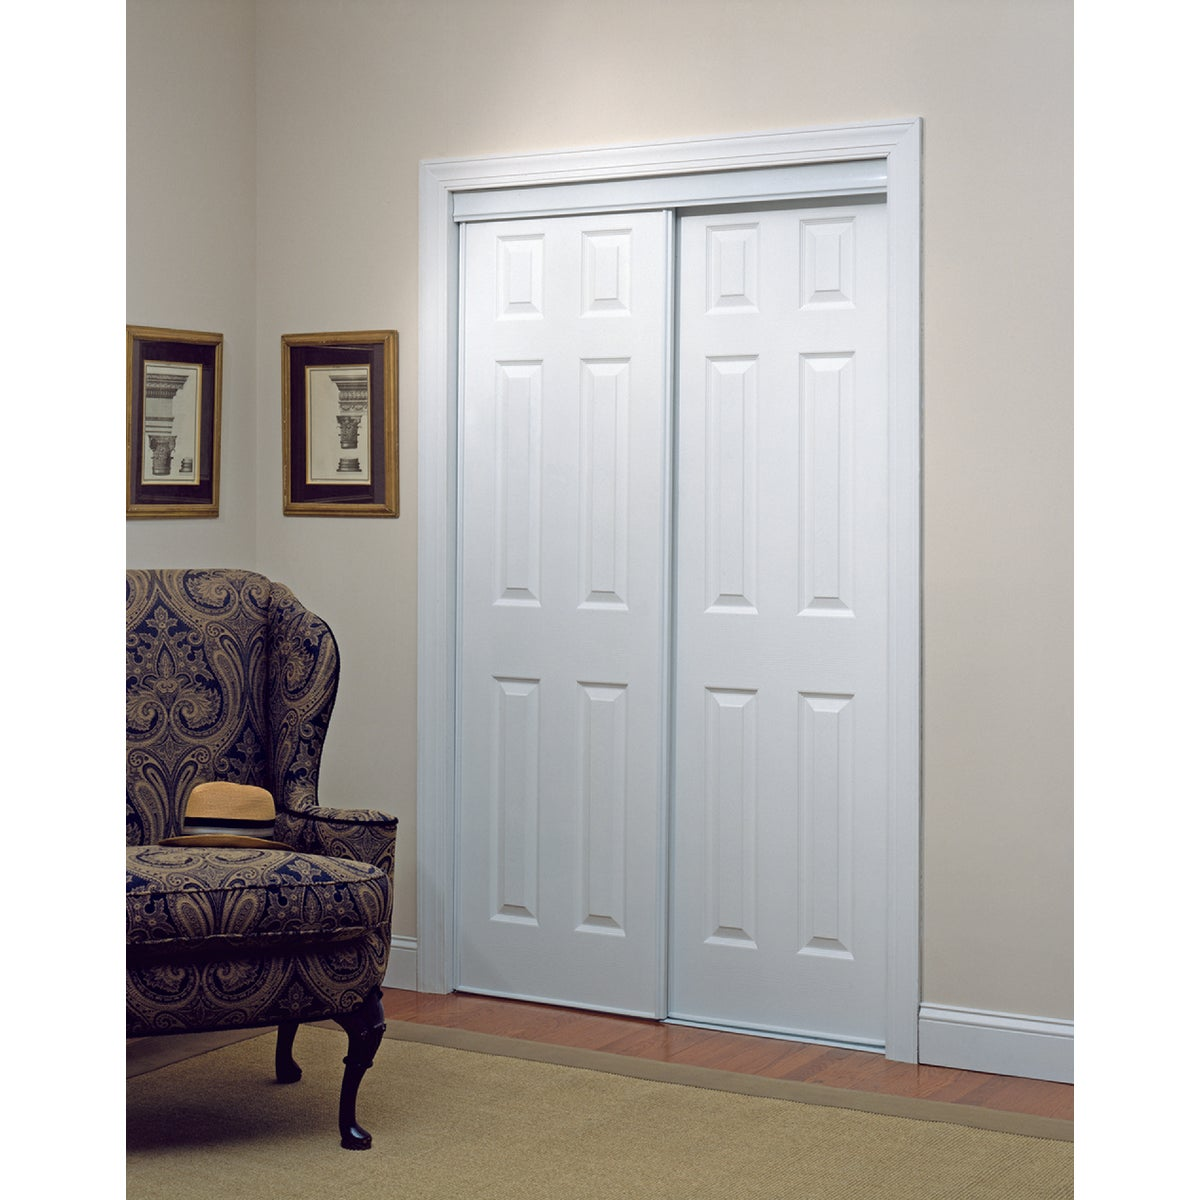 72X80 6-PNL BYPASS DOOR - 24-0012 by Home Decor Innov